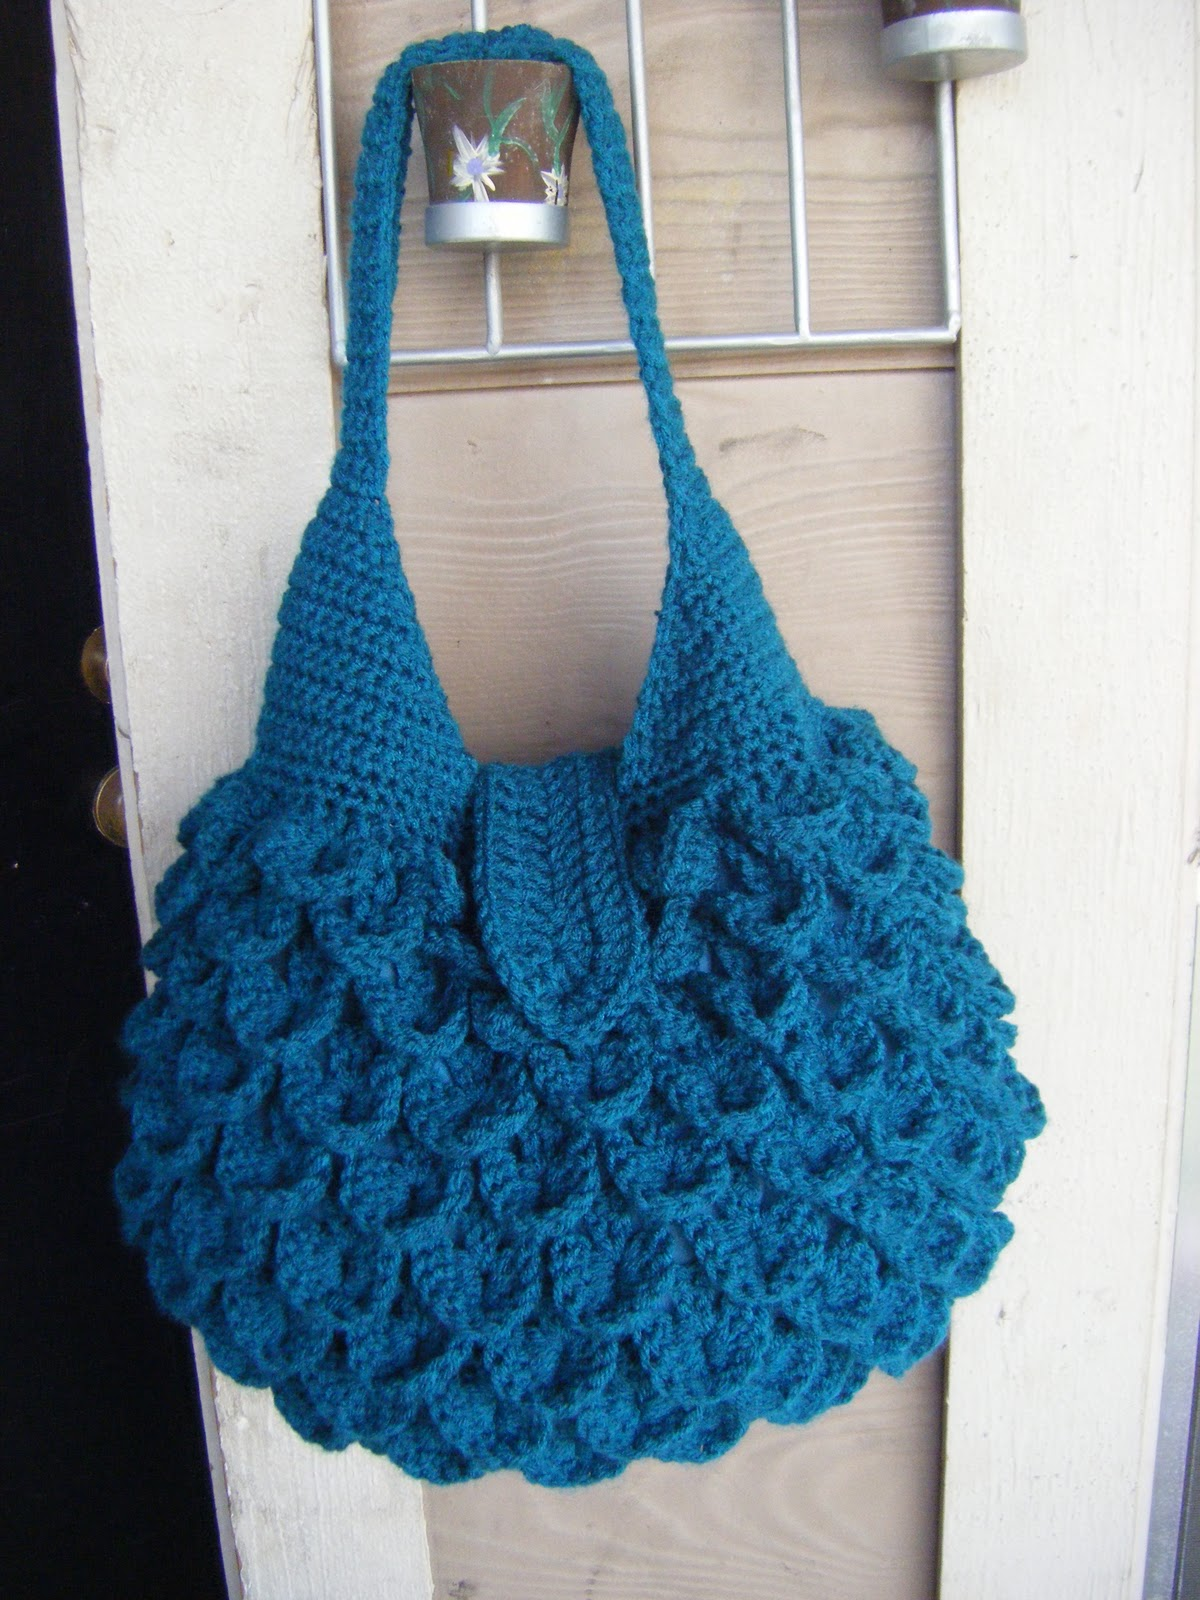 Crochet Purse Patterns Free : Best Patterns: Crocodile Crochet Bag PATTERN